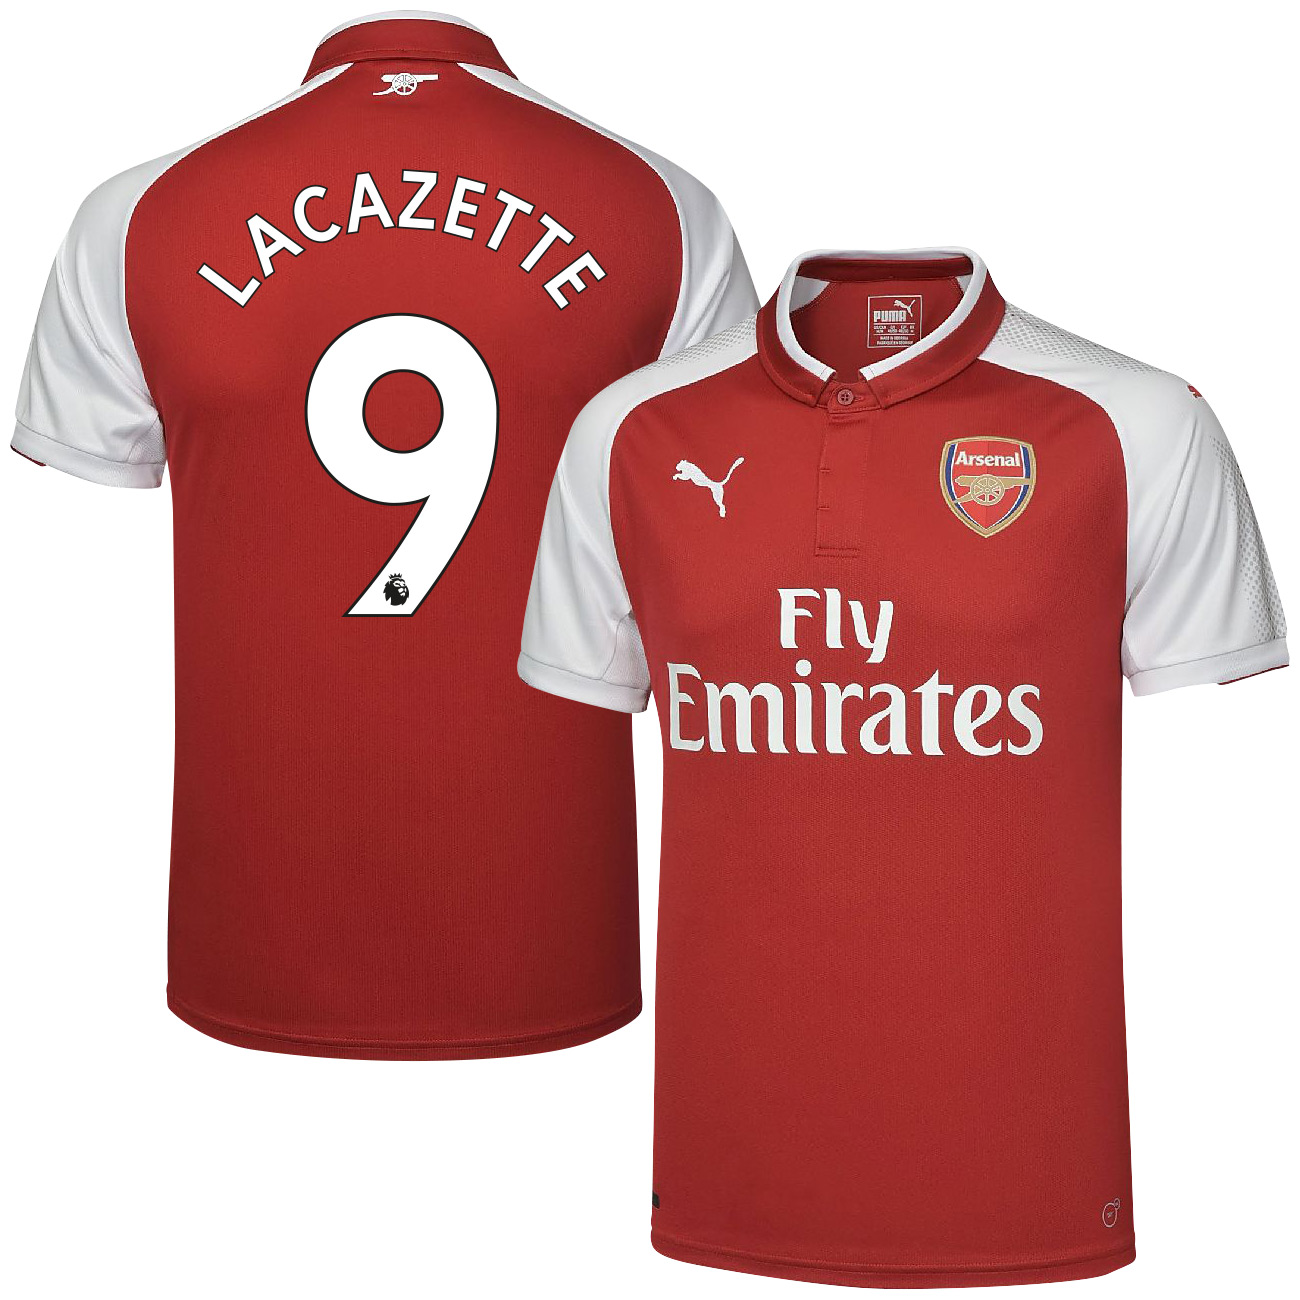 Arsenal Home Lacazette Jersey 2017 / 2018 (Authentic EPL Printing) - XL